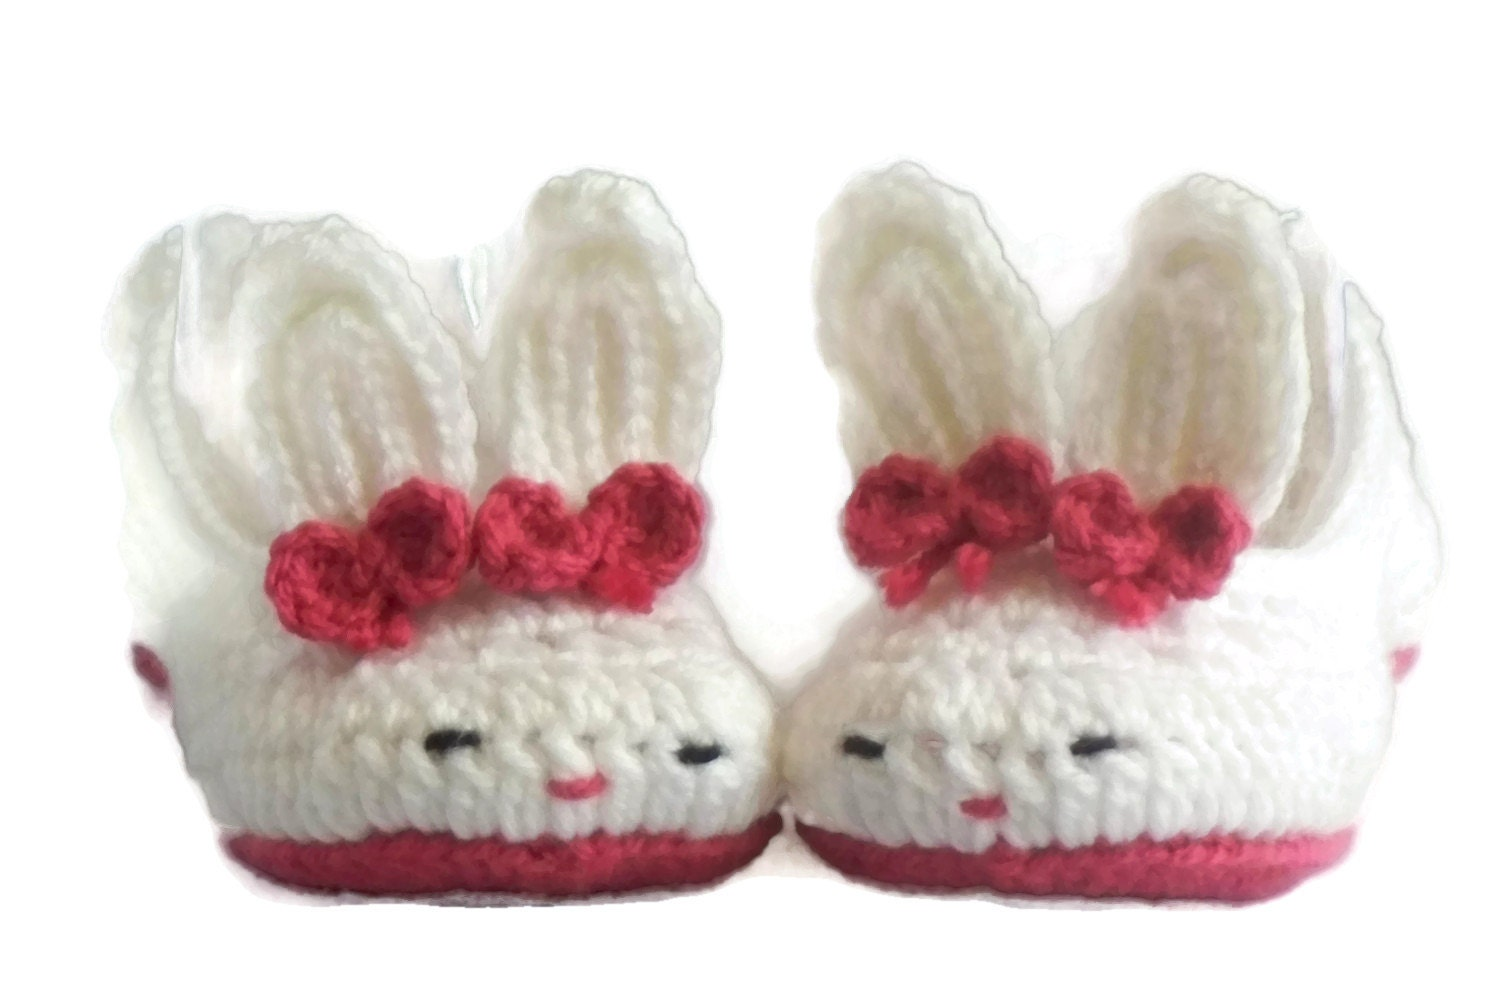 In addition to the adult sizes, we also carry children's bunny slippers for those small cottontail enthusiasts. Our collection of bunny themed slippers is unparalleled. With bunny slippers for kids to adult bunny slippers, we have something for an entire family of bunny enthusiasts.